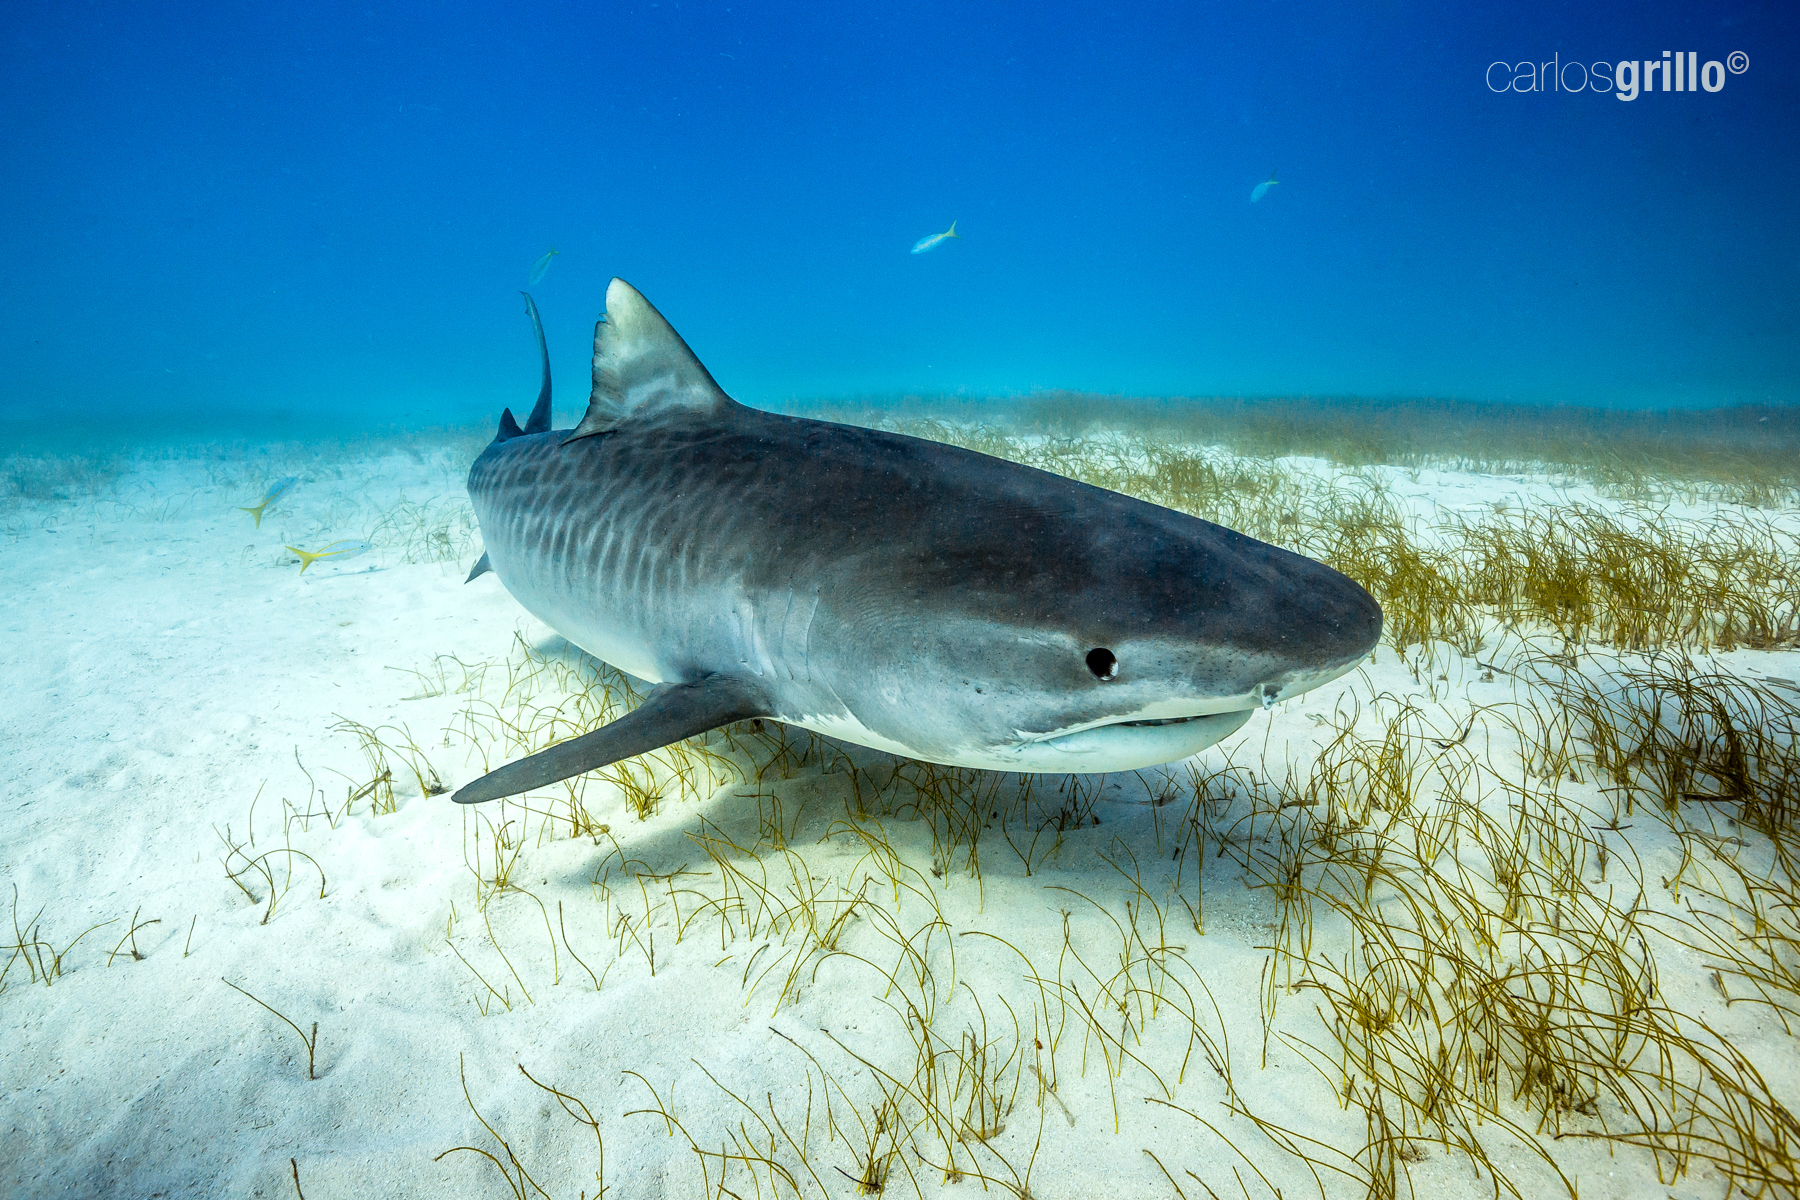 A beautiful and curious tiger shark.